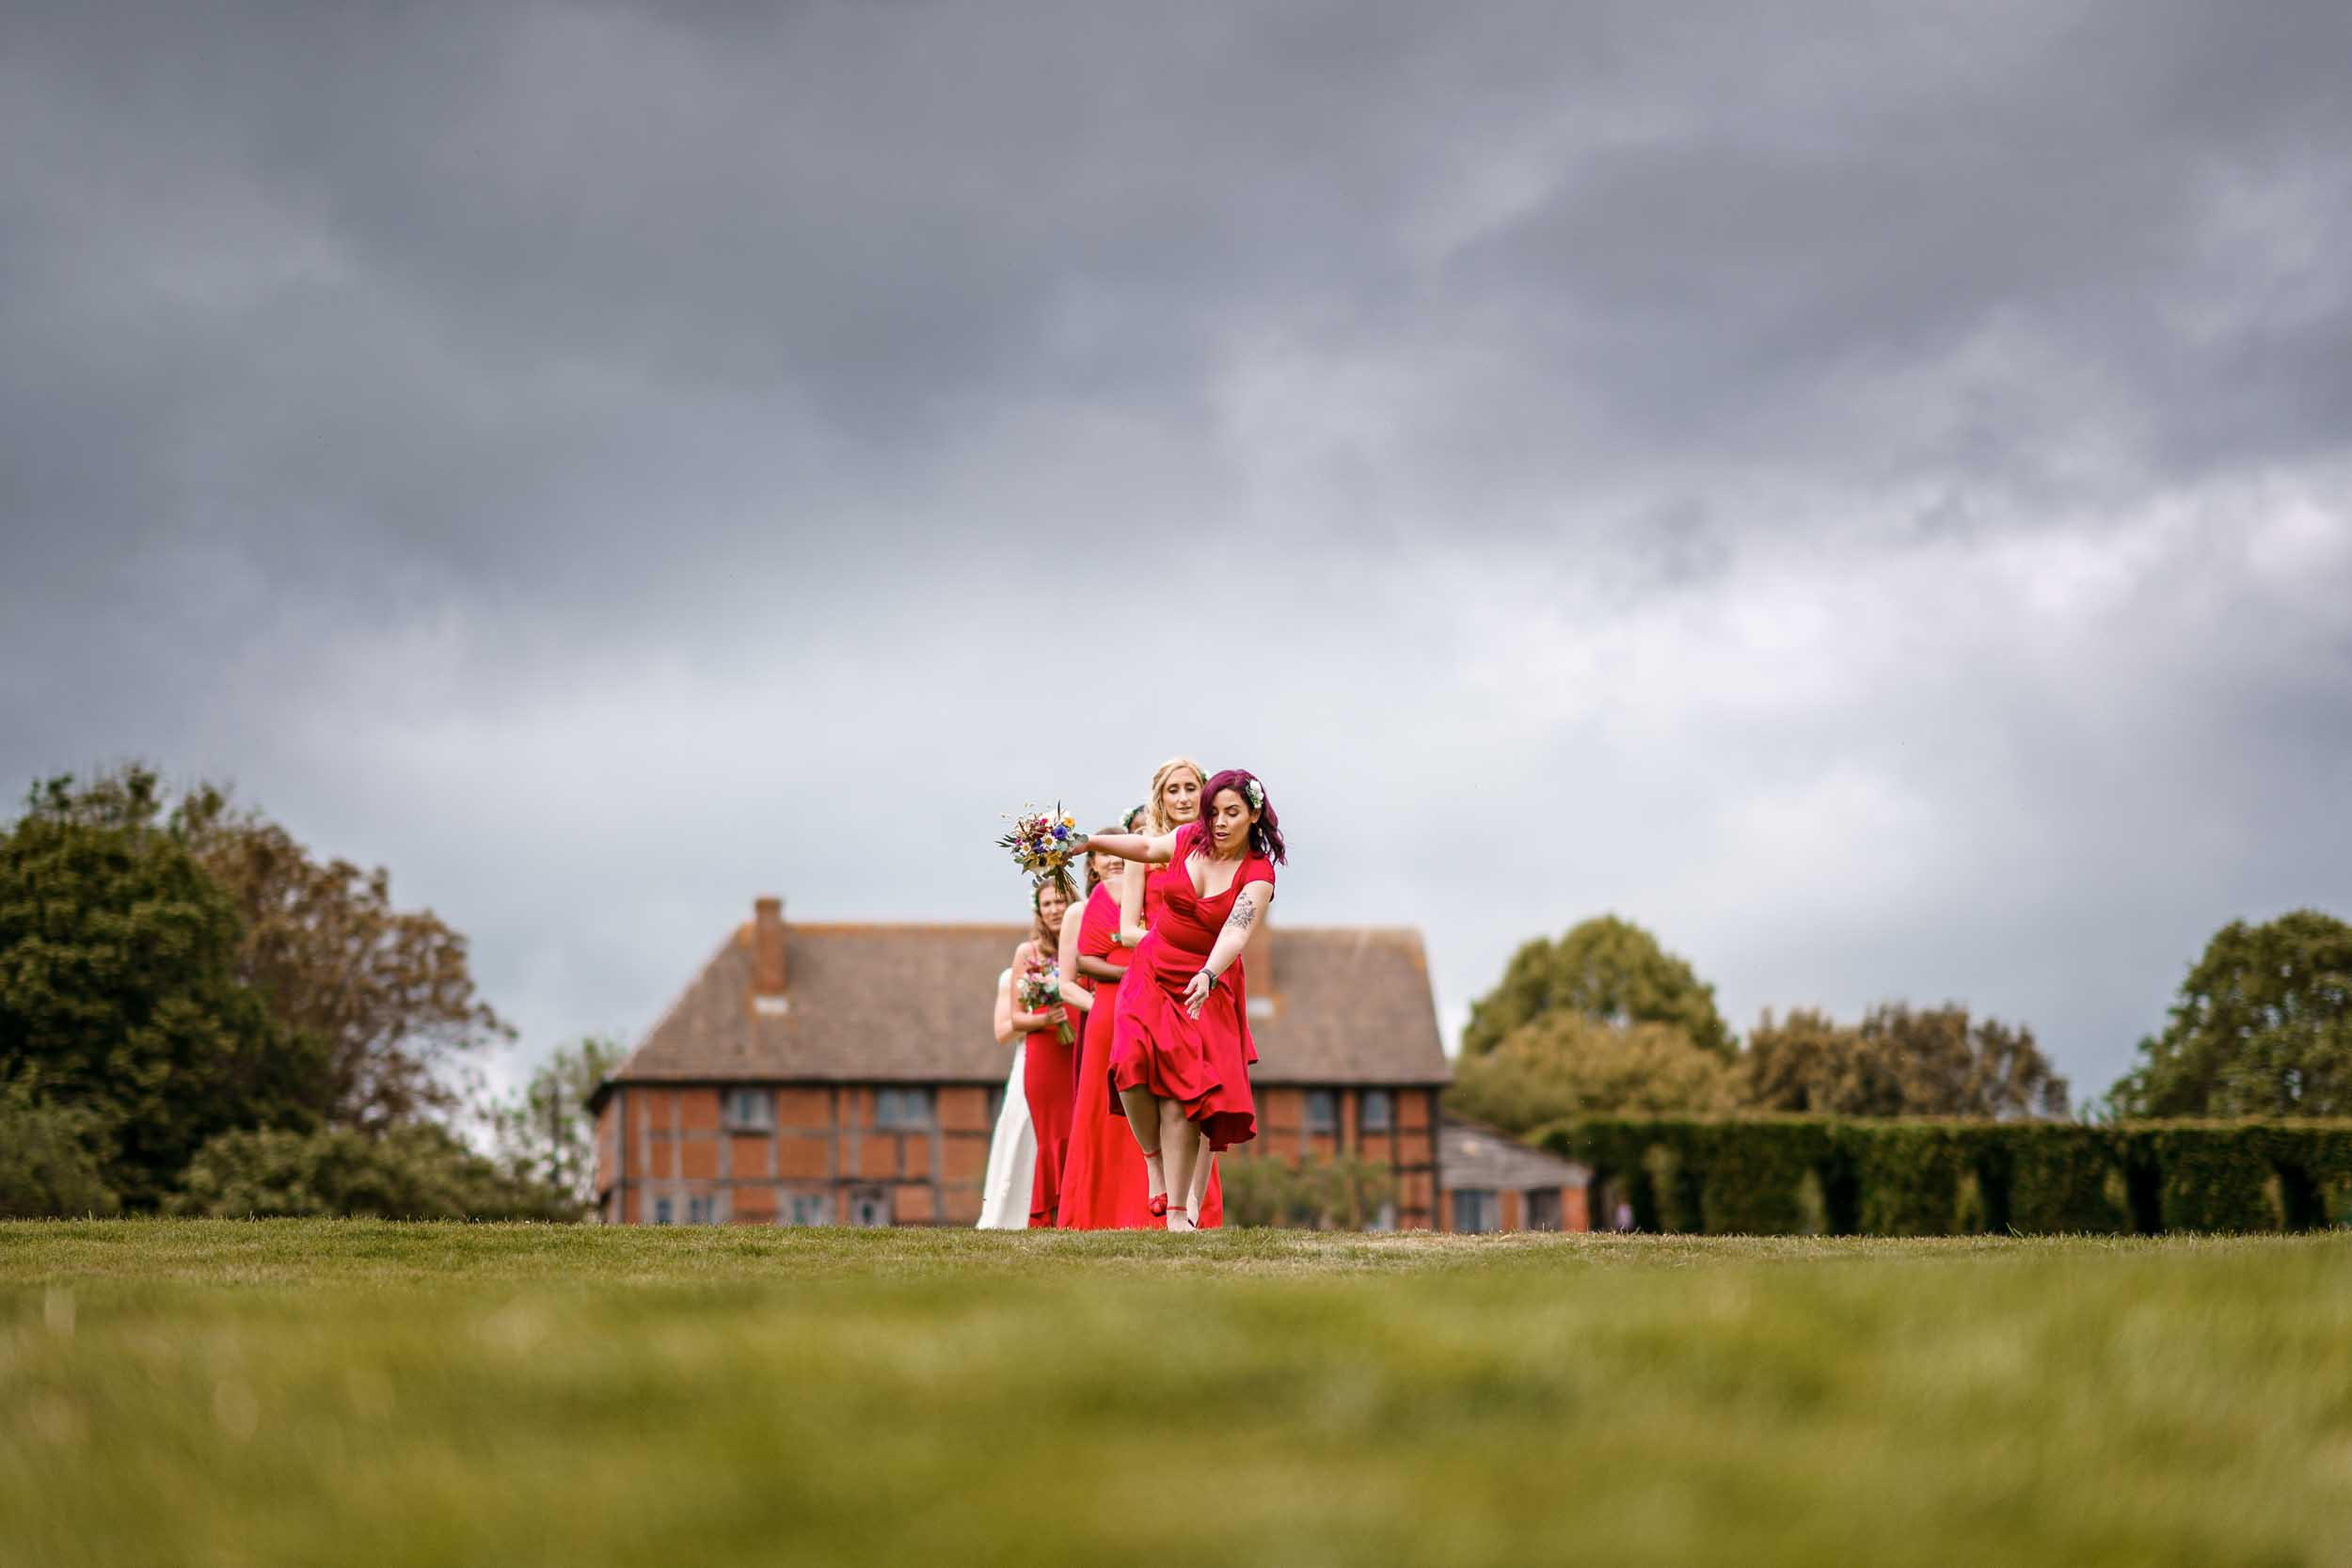 Pauntley Court Wedding Photography - Gloucestershire wedding photographer